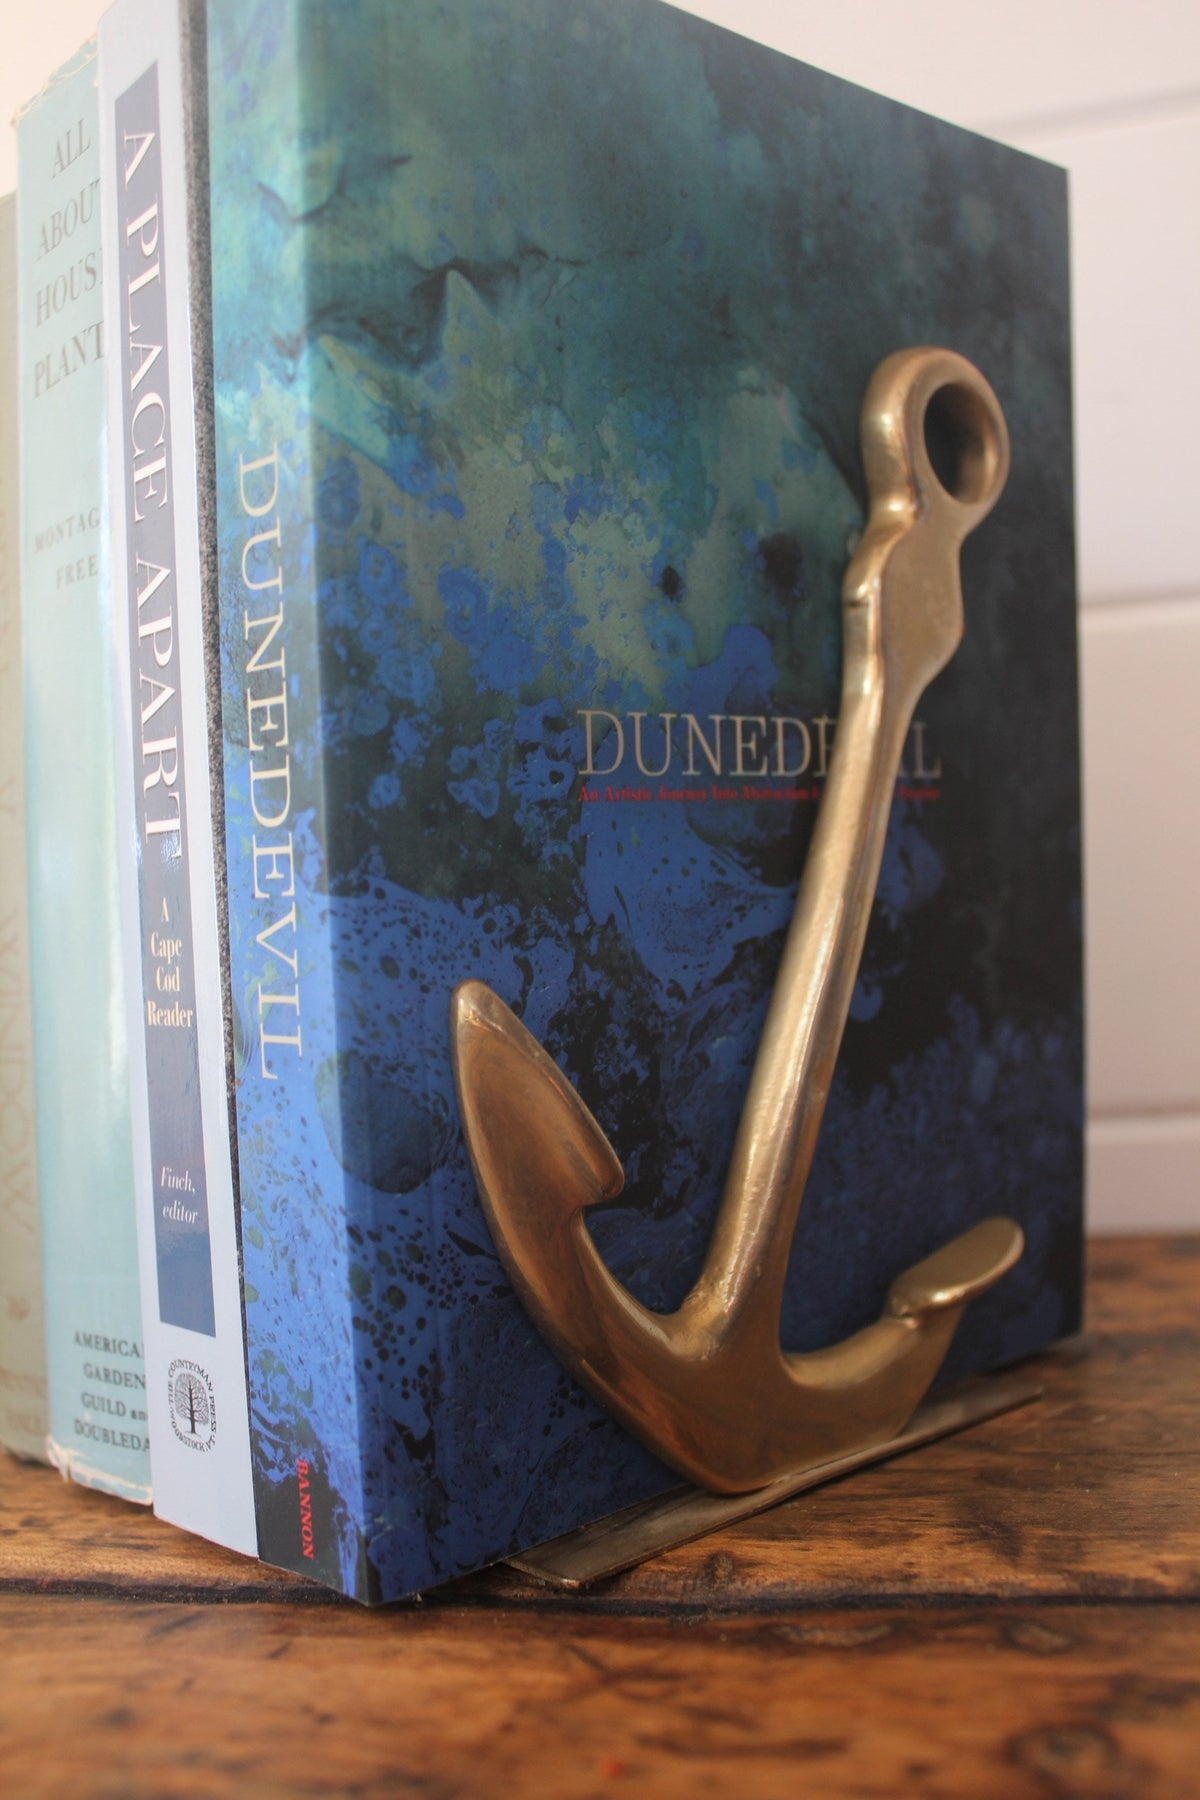 Vintage Brass Anchor Bookends - Diamonds & Rust